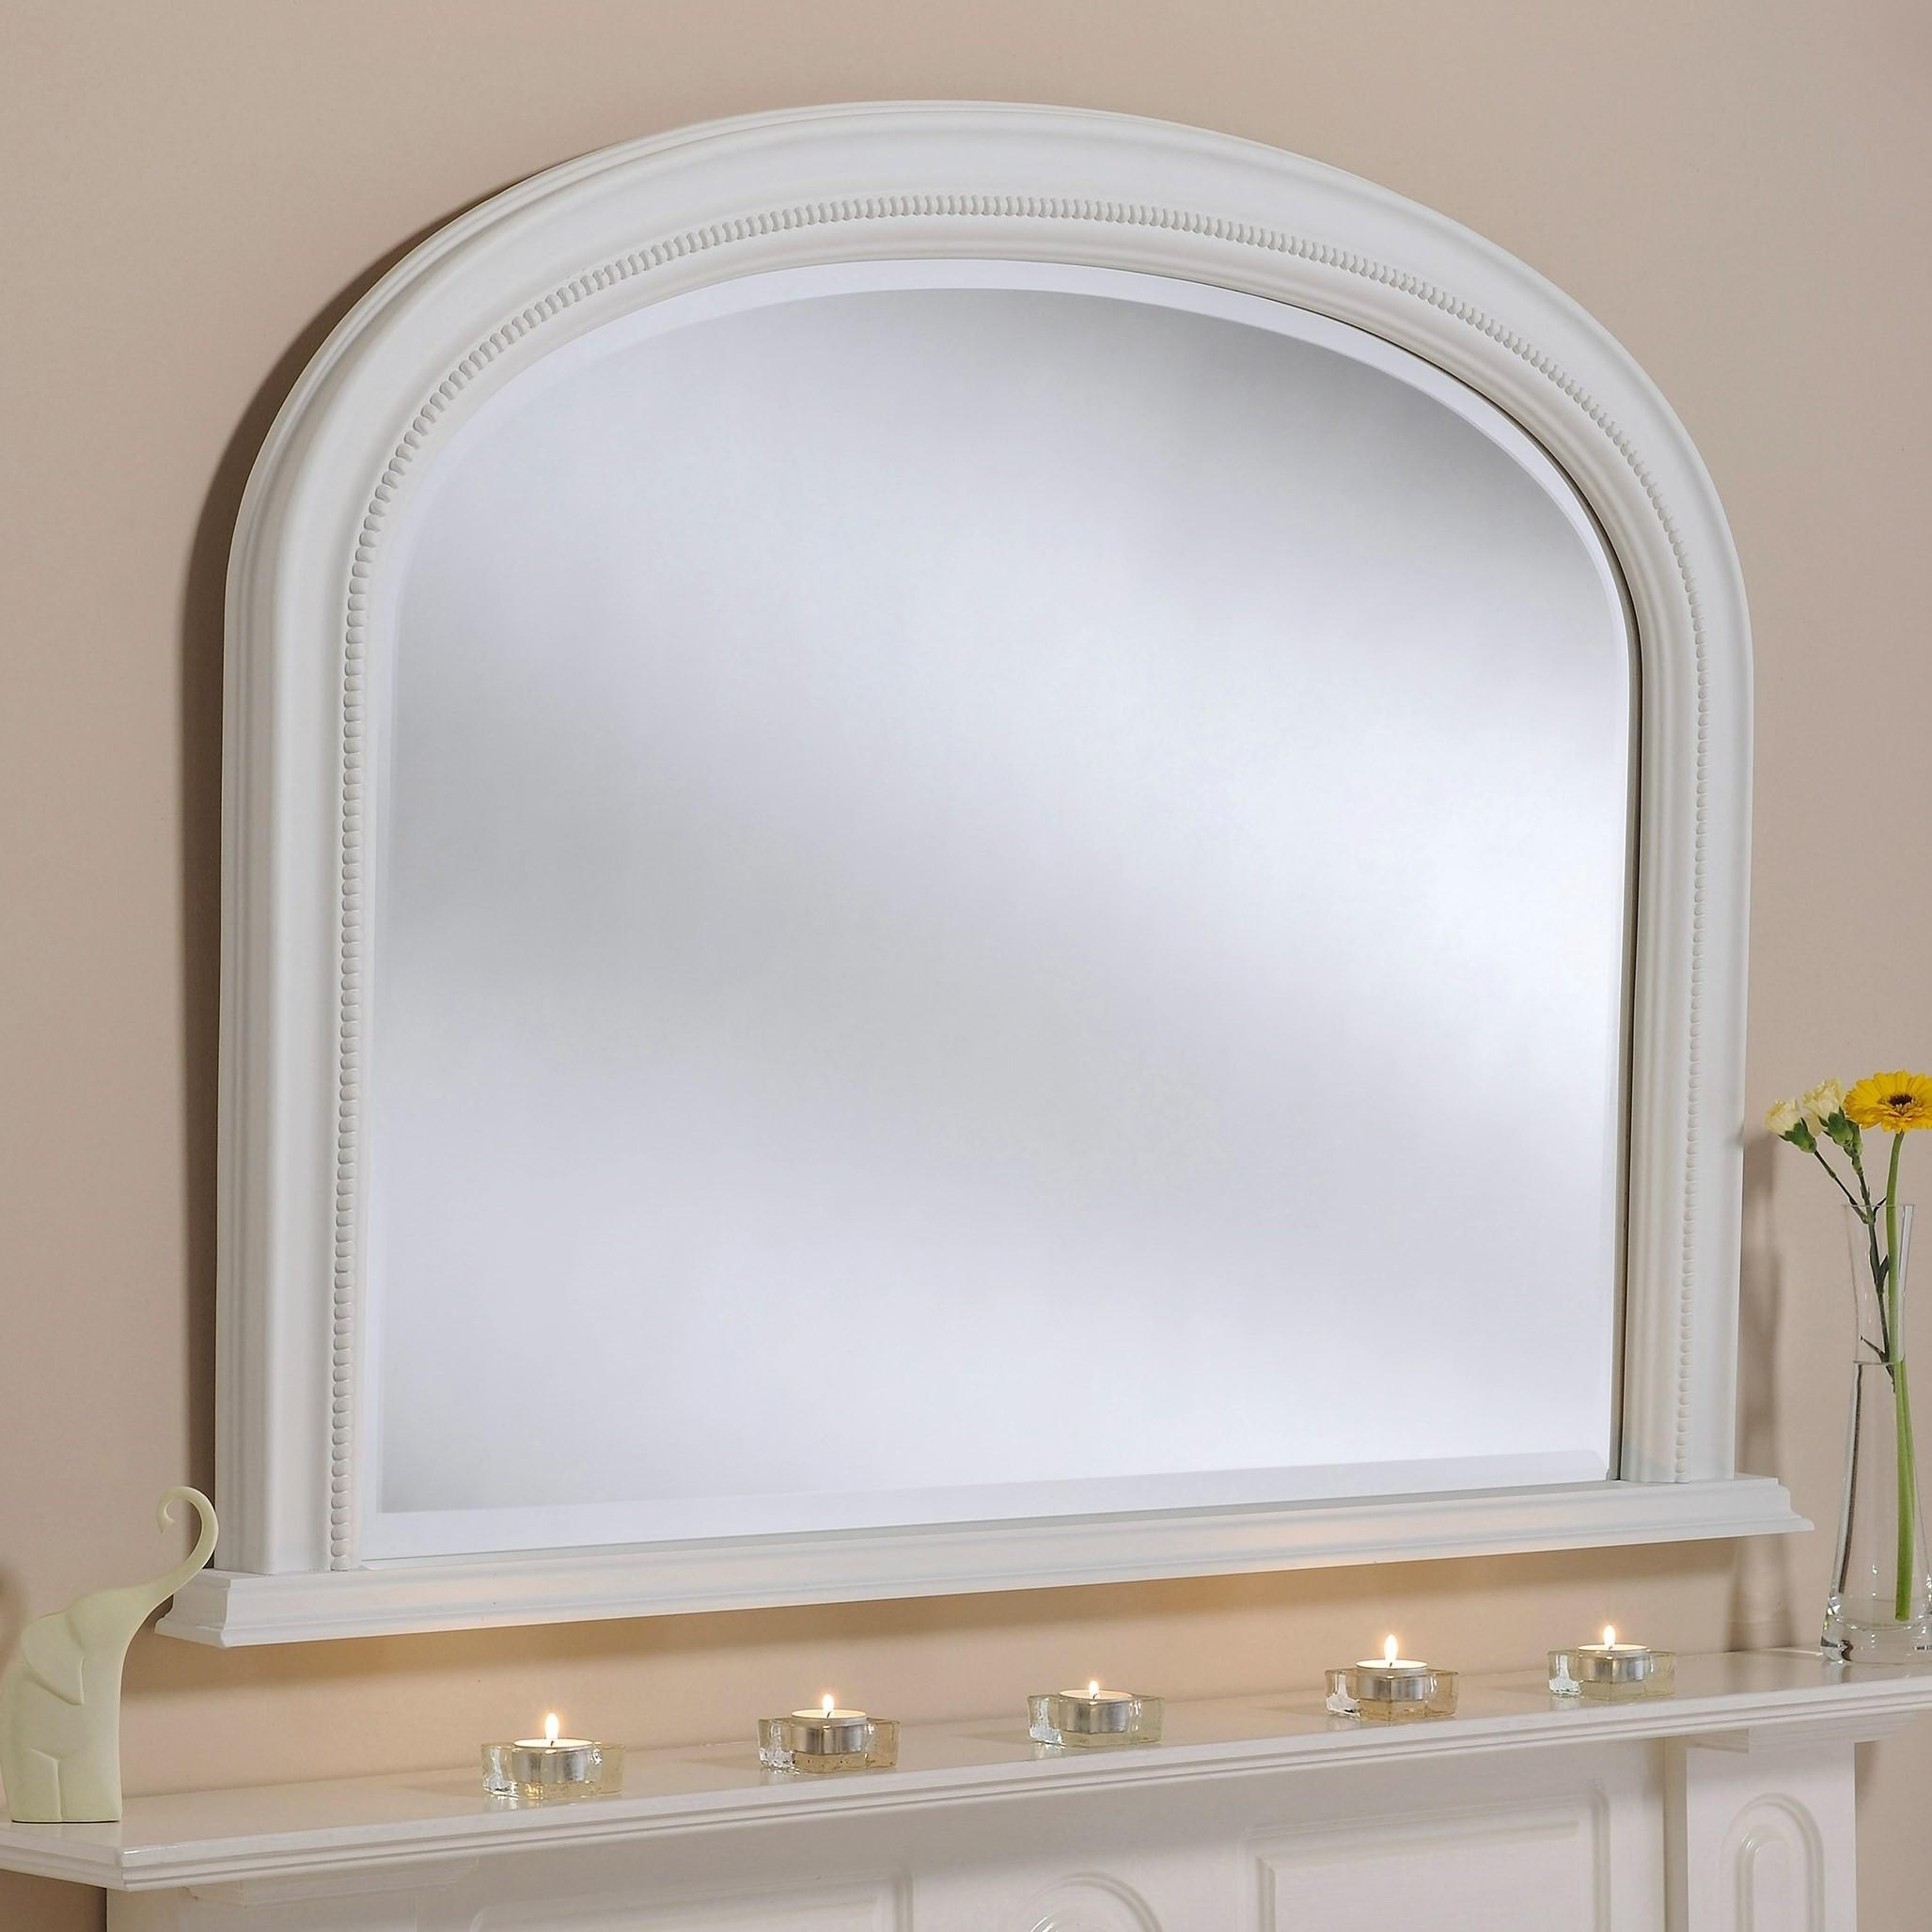 Belle Overmantle Mirror From £269 – Luxury Overmantle Mirrors Regarding White Overmantle Mirror (Image 5 of 20)